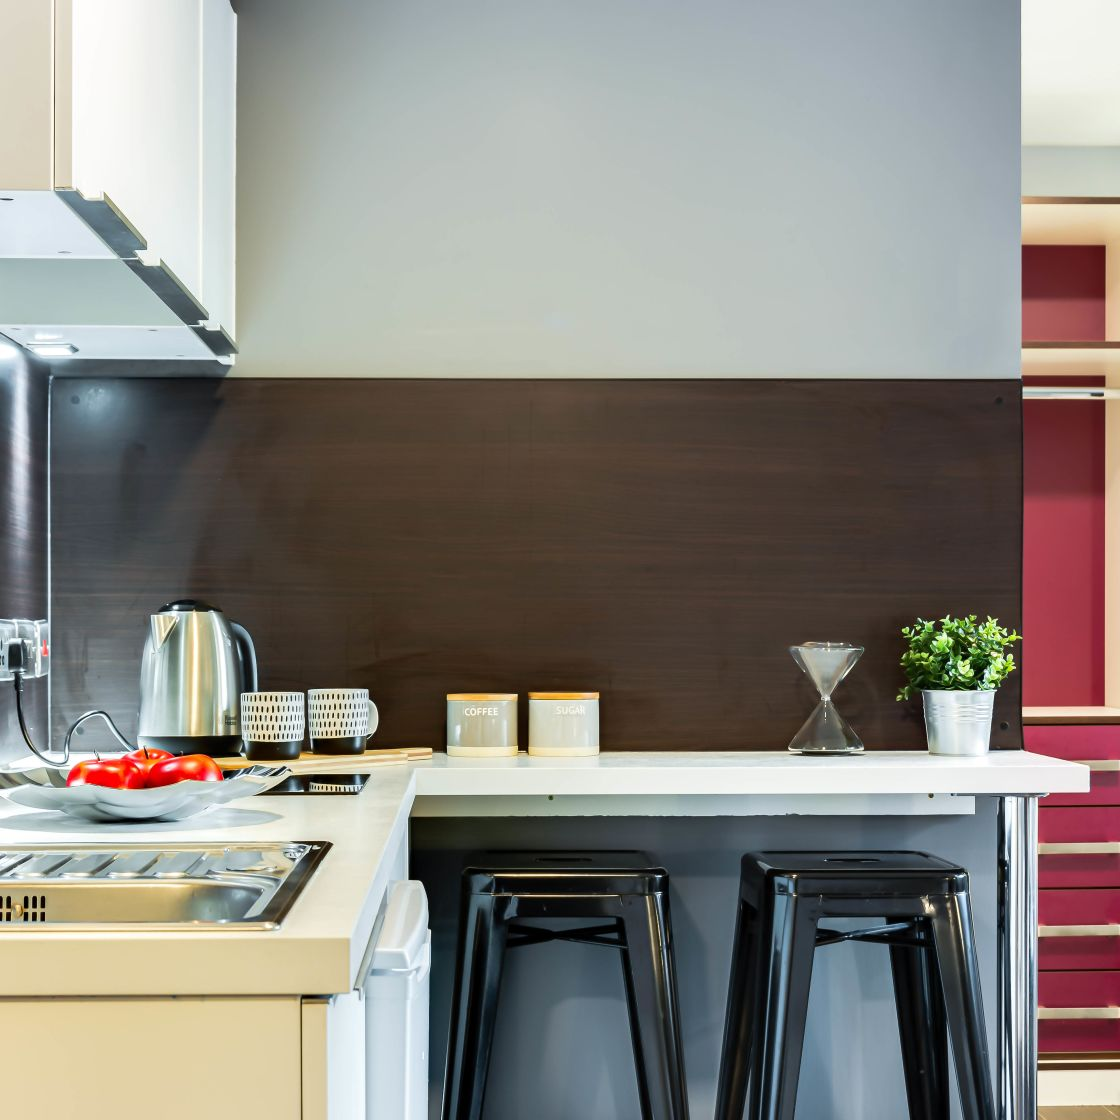 Elegance Student Apartment in Leeds. Kitchen with breakfast bar. IconInc, The Edge